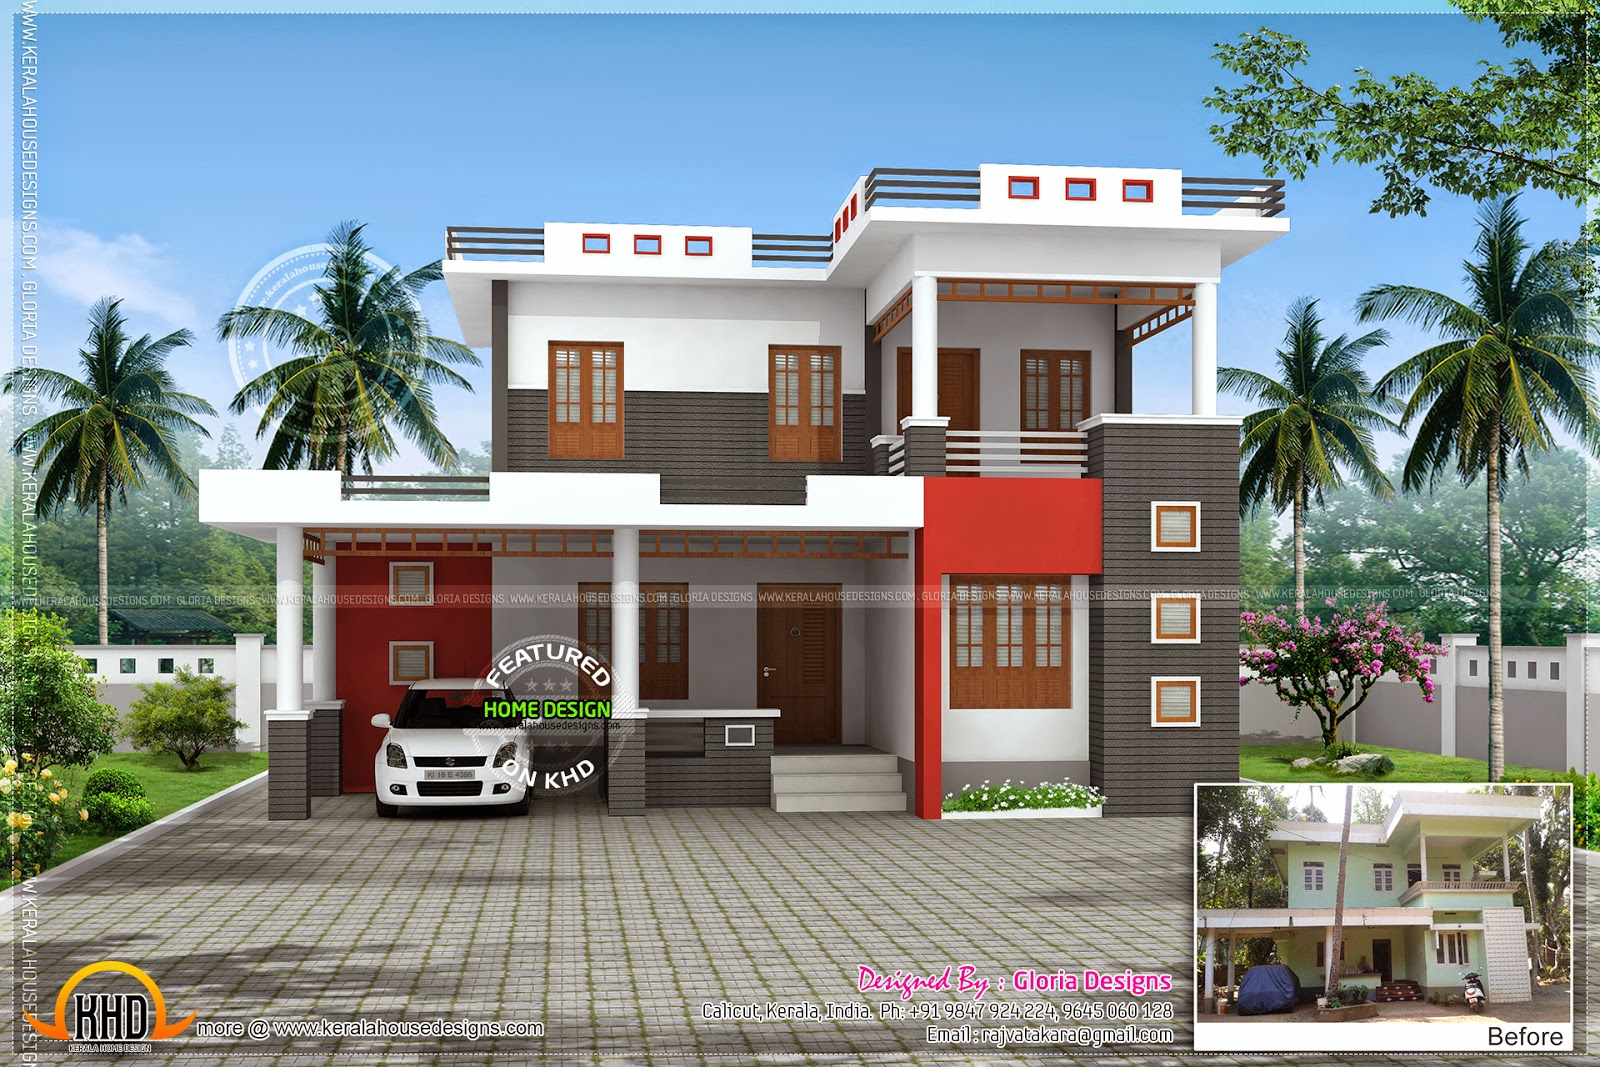 Renovation 3d model for an old house kerala home design for Renovation ideas for small homes in india